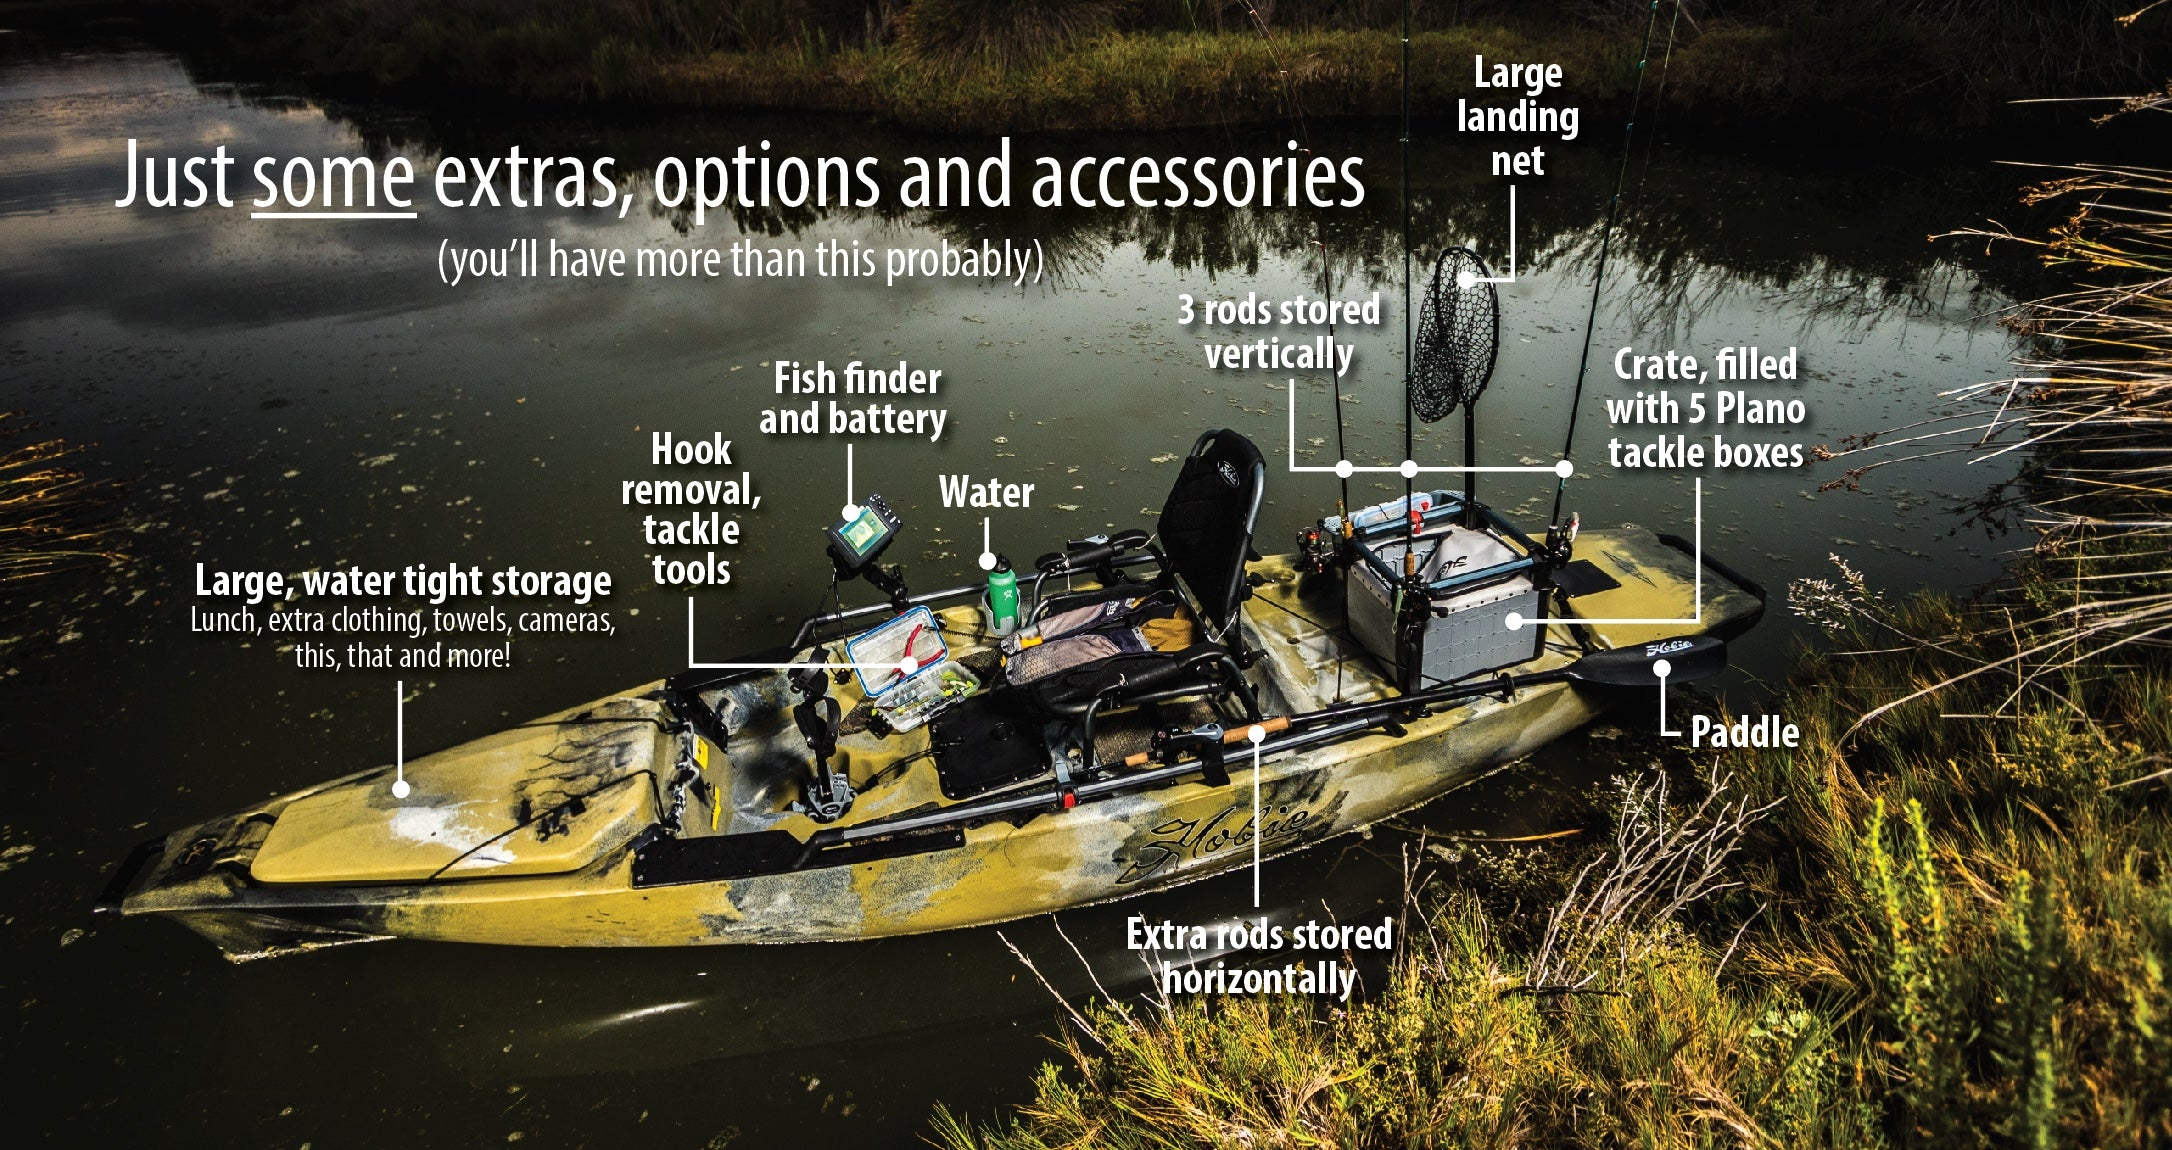 Hobie Kayak Fishing Options, Accessories And Extras